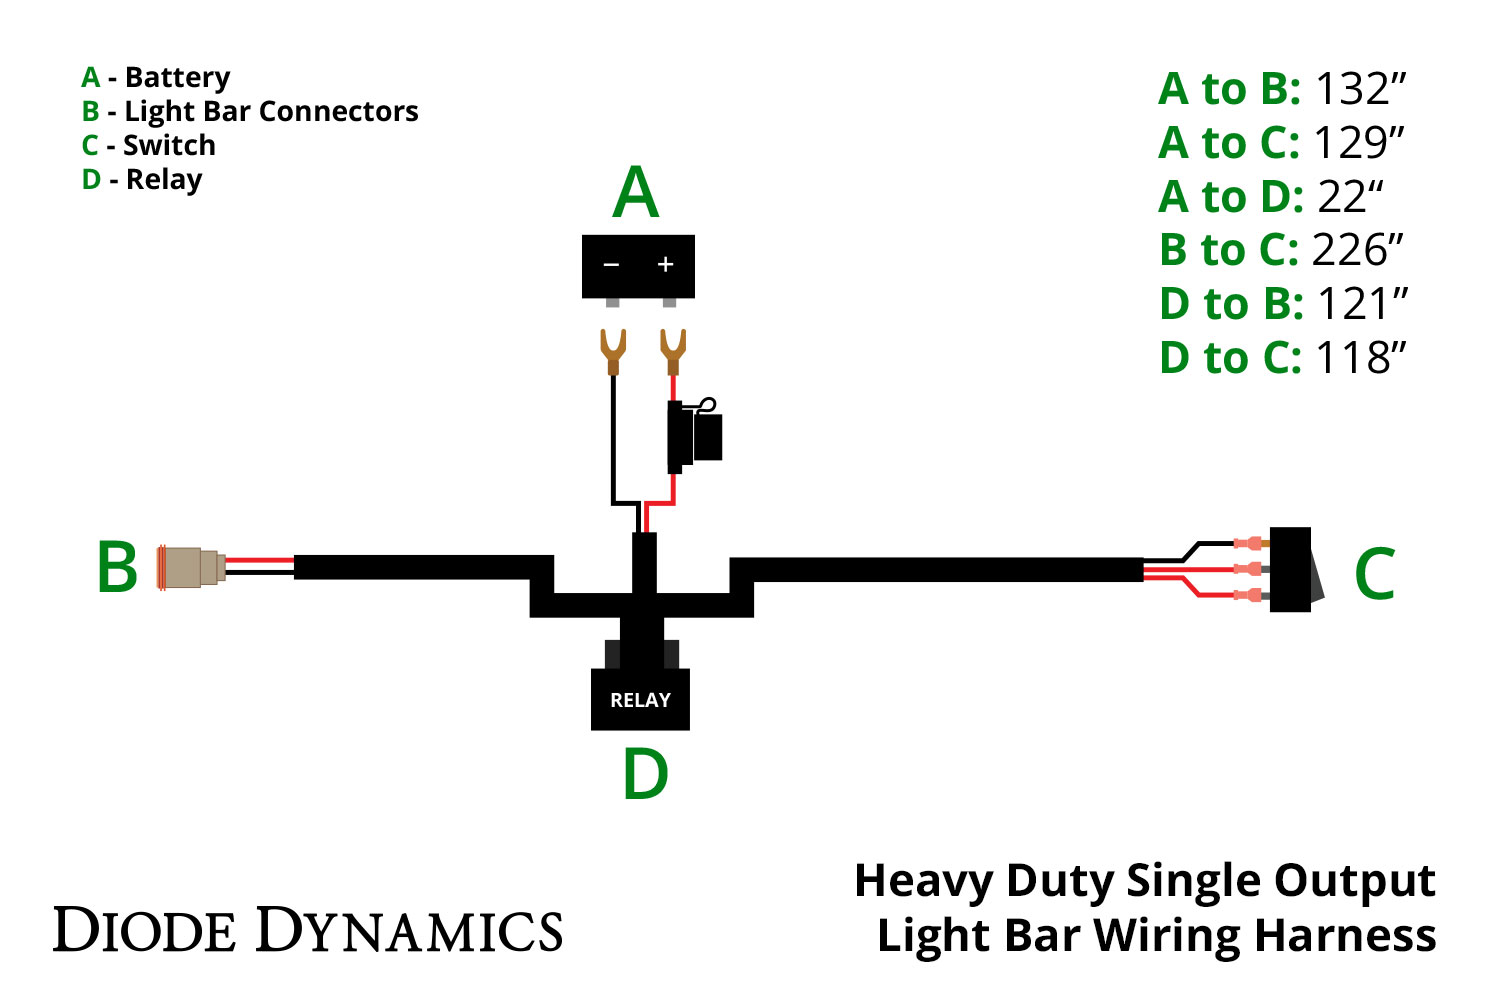 Marvelous Heavy Duty Single Output Light Bar Wiring Harness Diode Dynamics Wiring Digital Resources Llinedefiancerspsorg